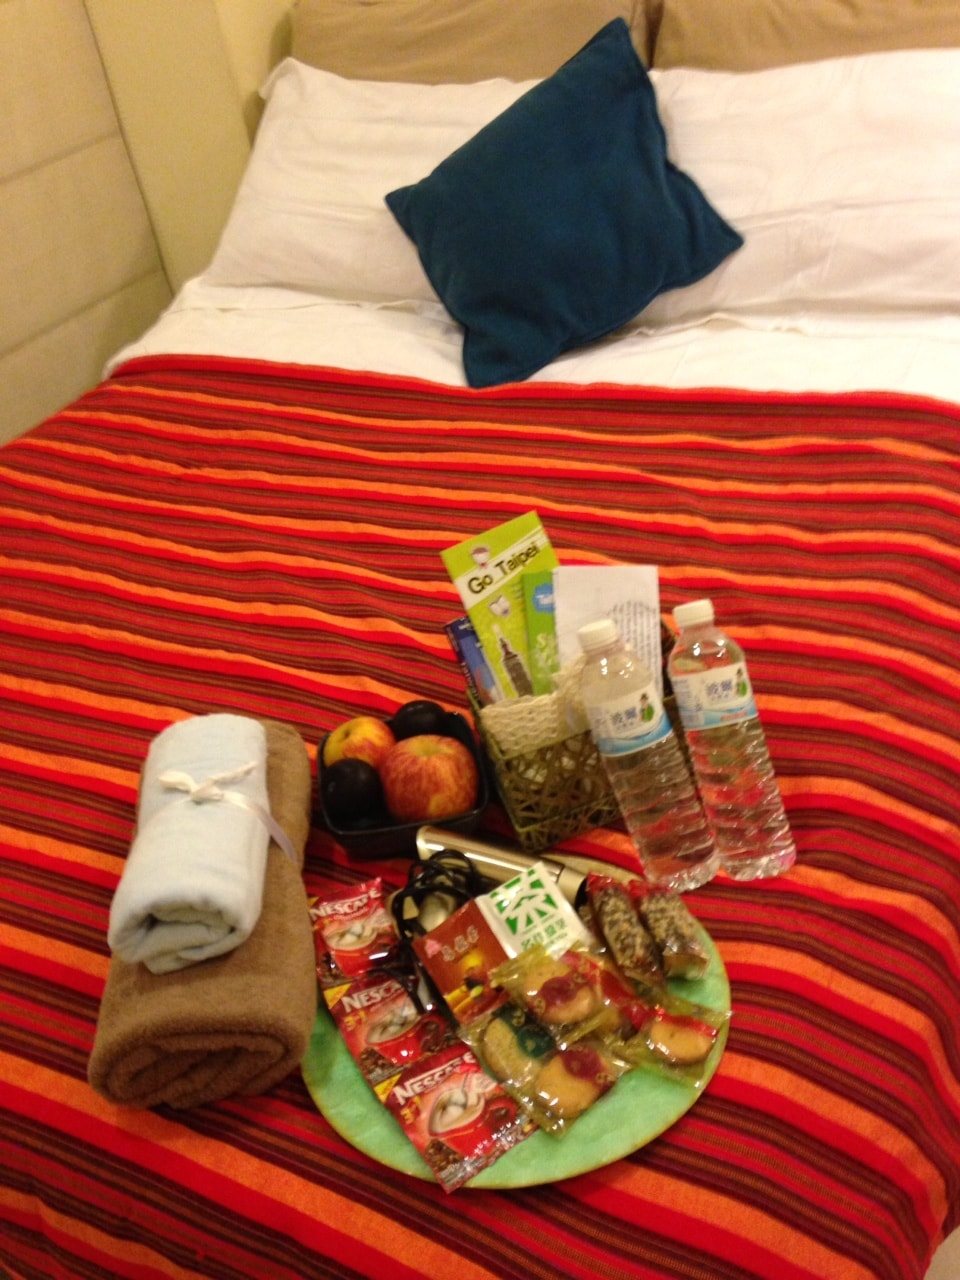 room comes with toiletries, fresh fruit, maps, lonely planet guide book, snacks, coffee, taiwanese tea, water and other freebies